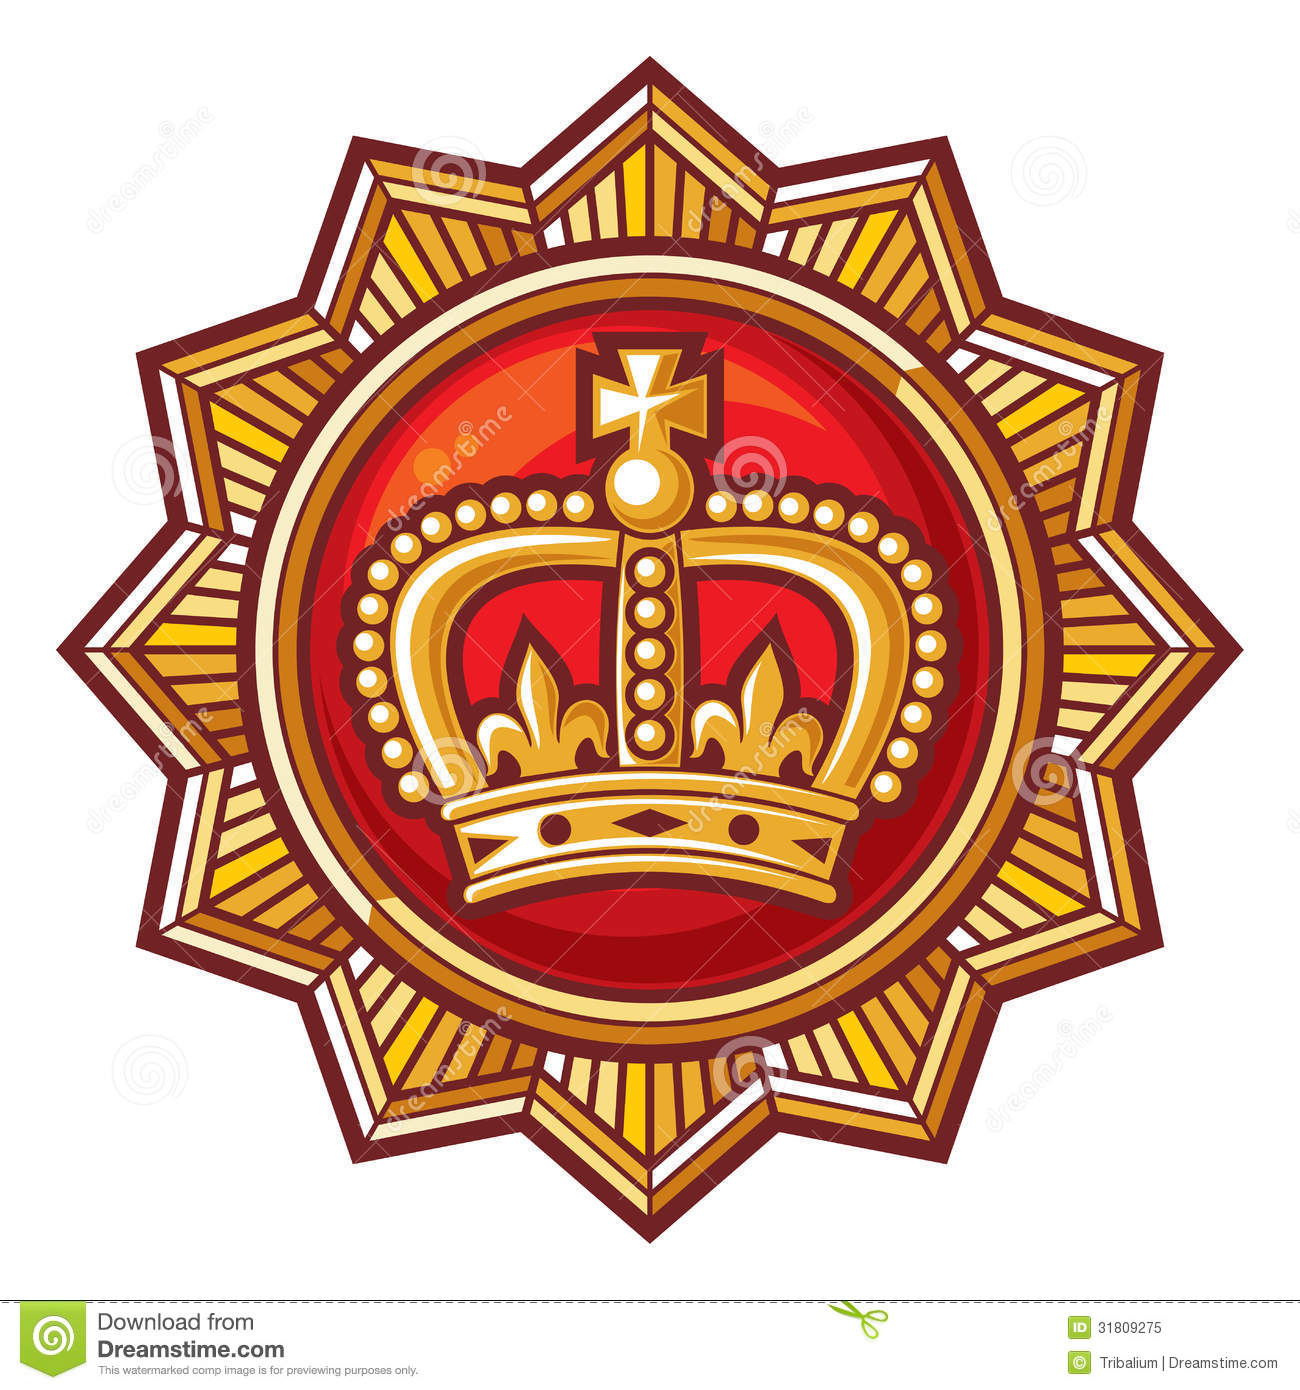 Crown Badge Royalty Free Stock Photo - Image: 31809275